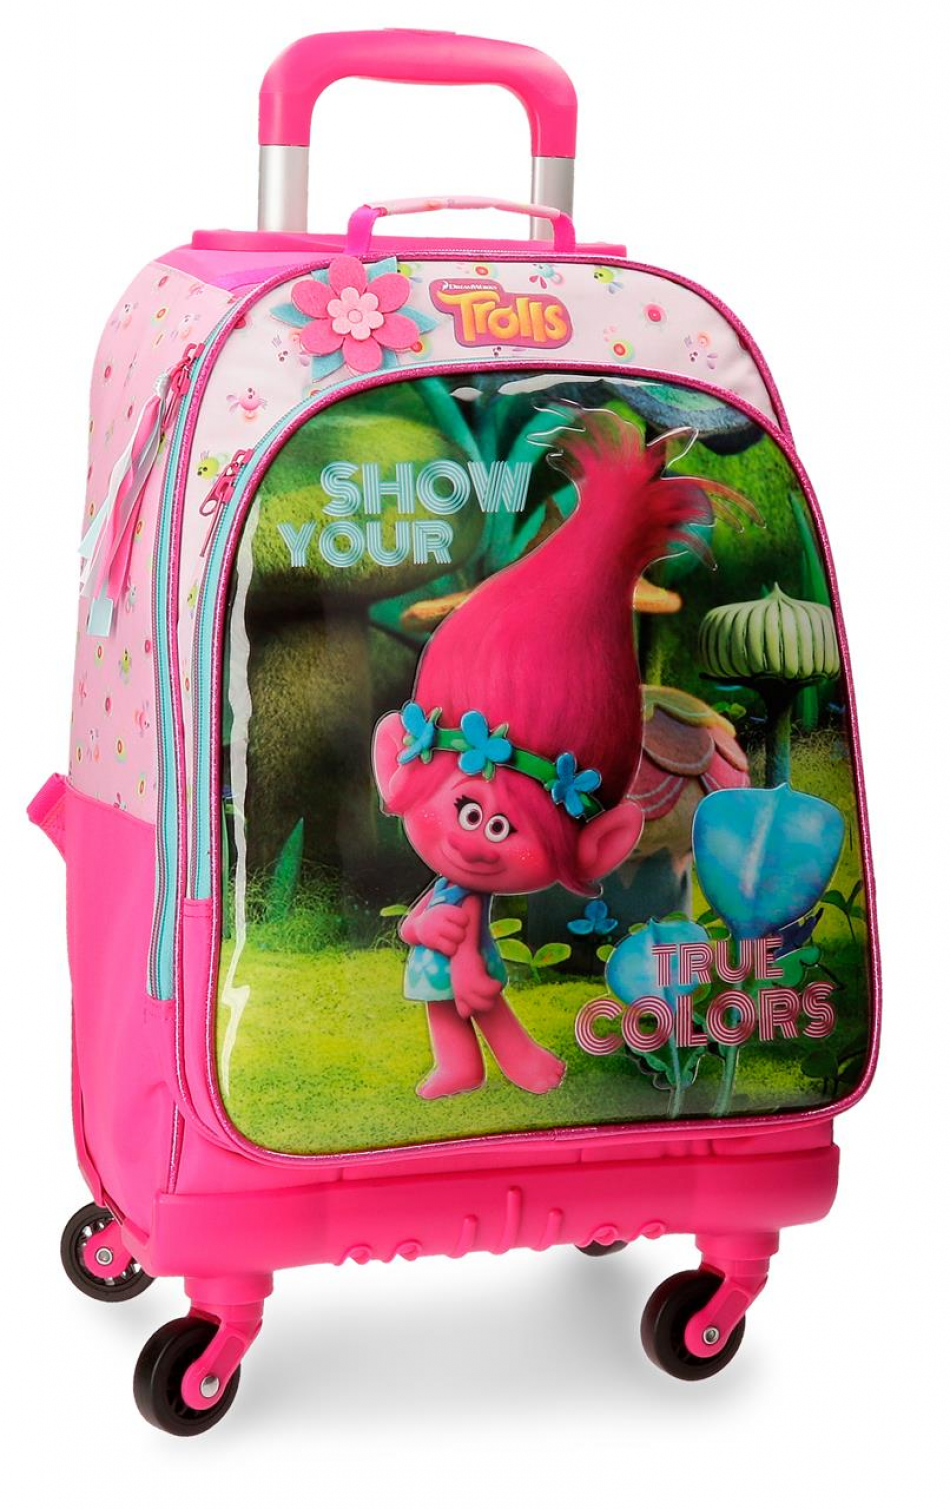 Trolley-mochila 4 ruedas Trolls True colors